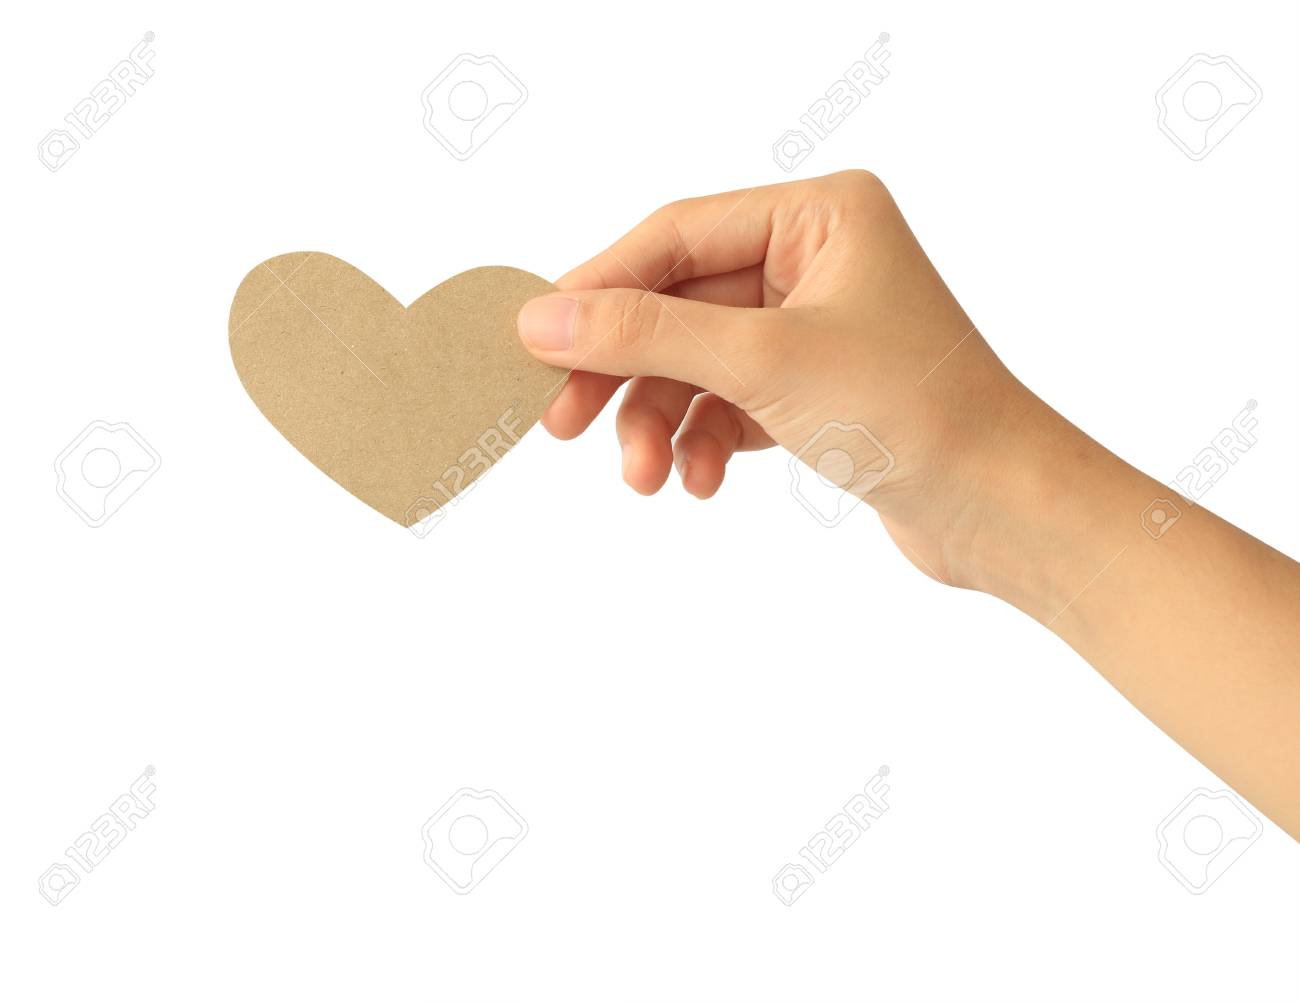 Woman hand holding paper heart isolated on white background - 110093370